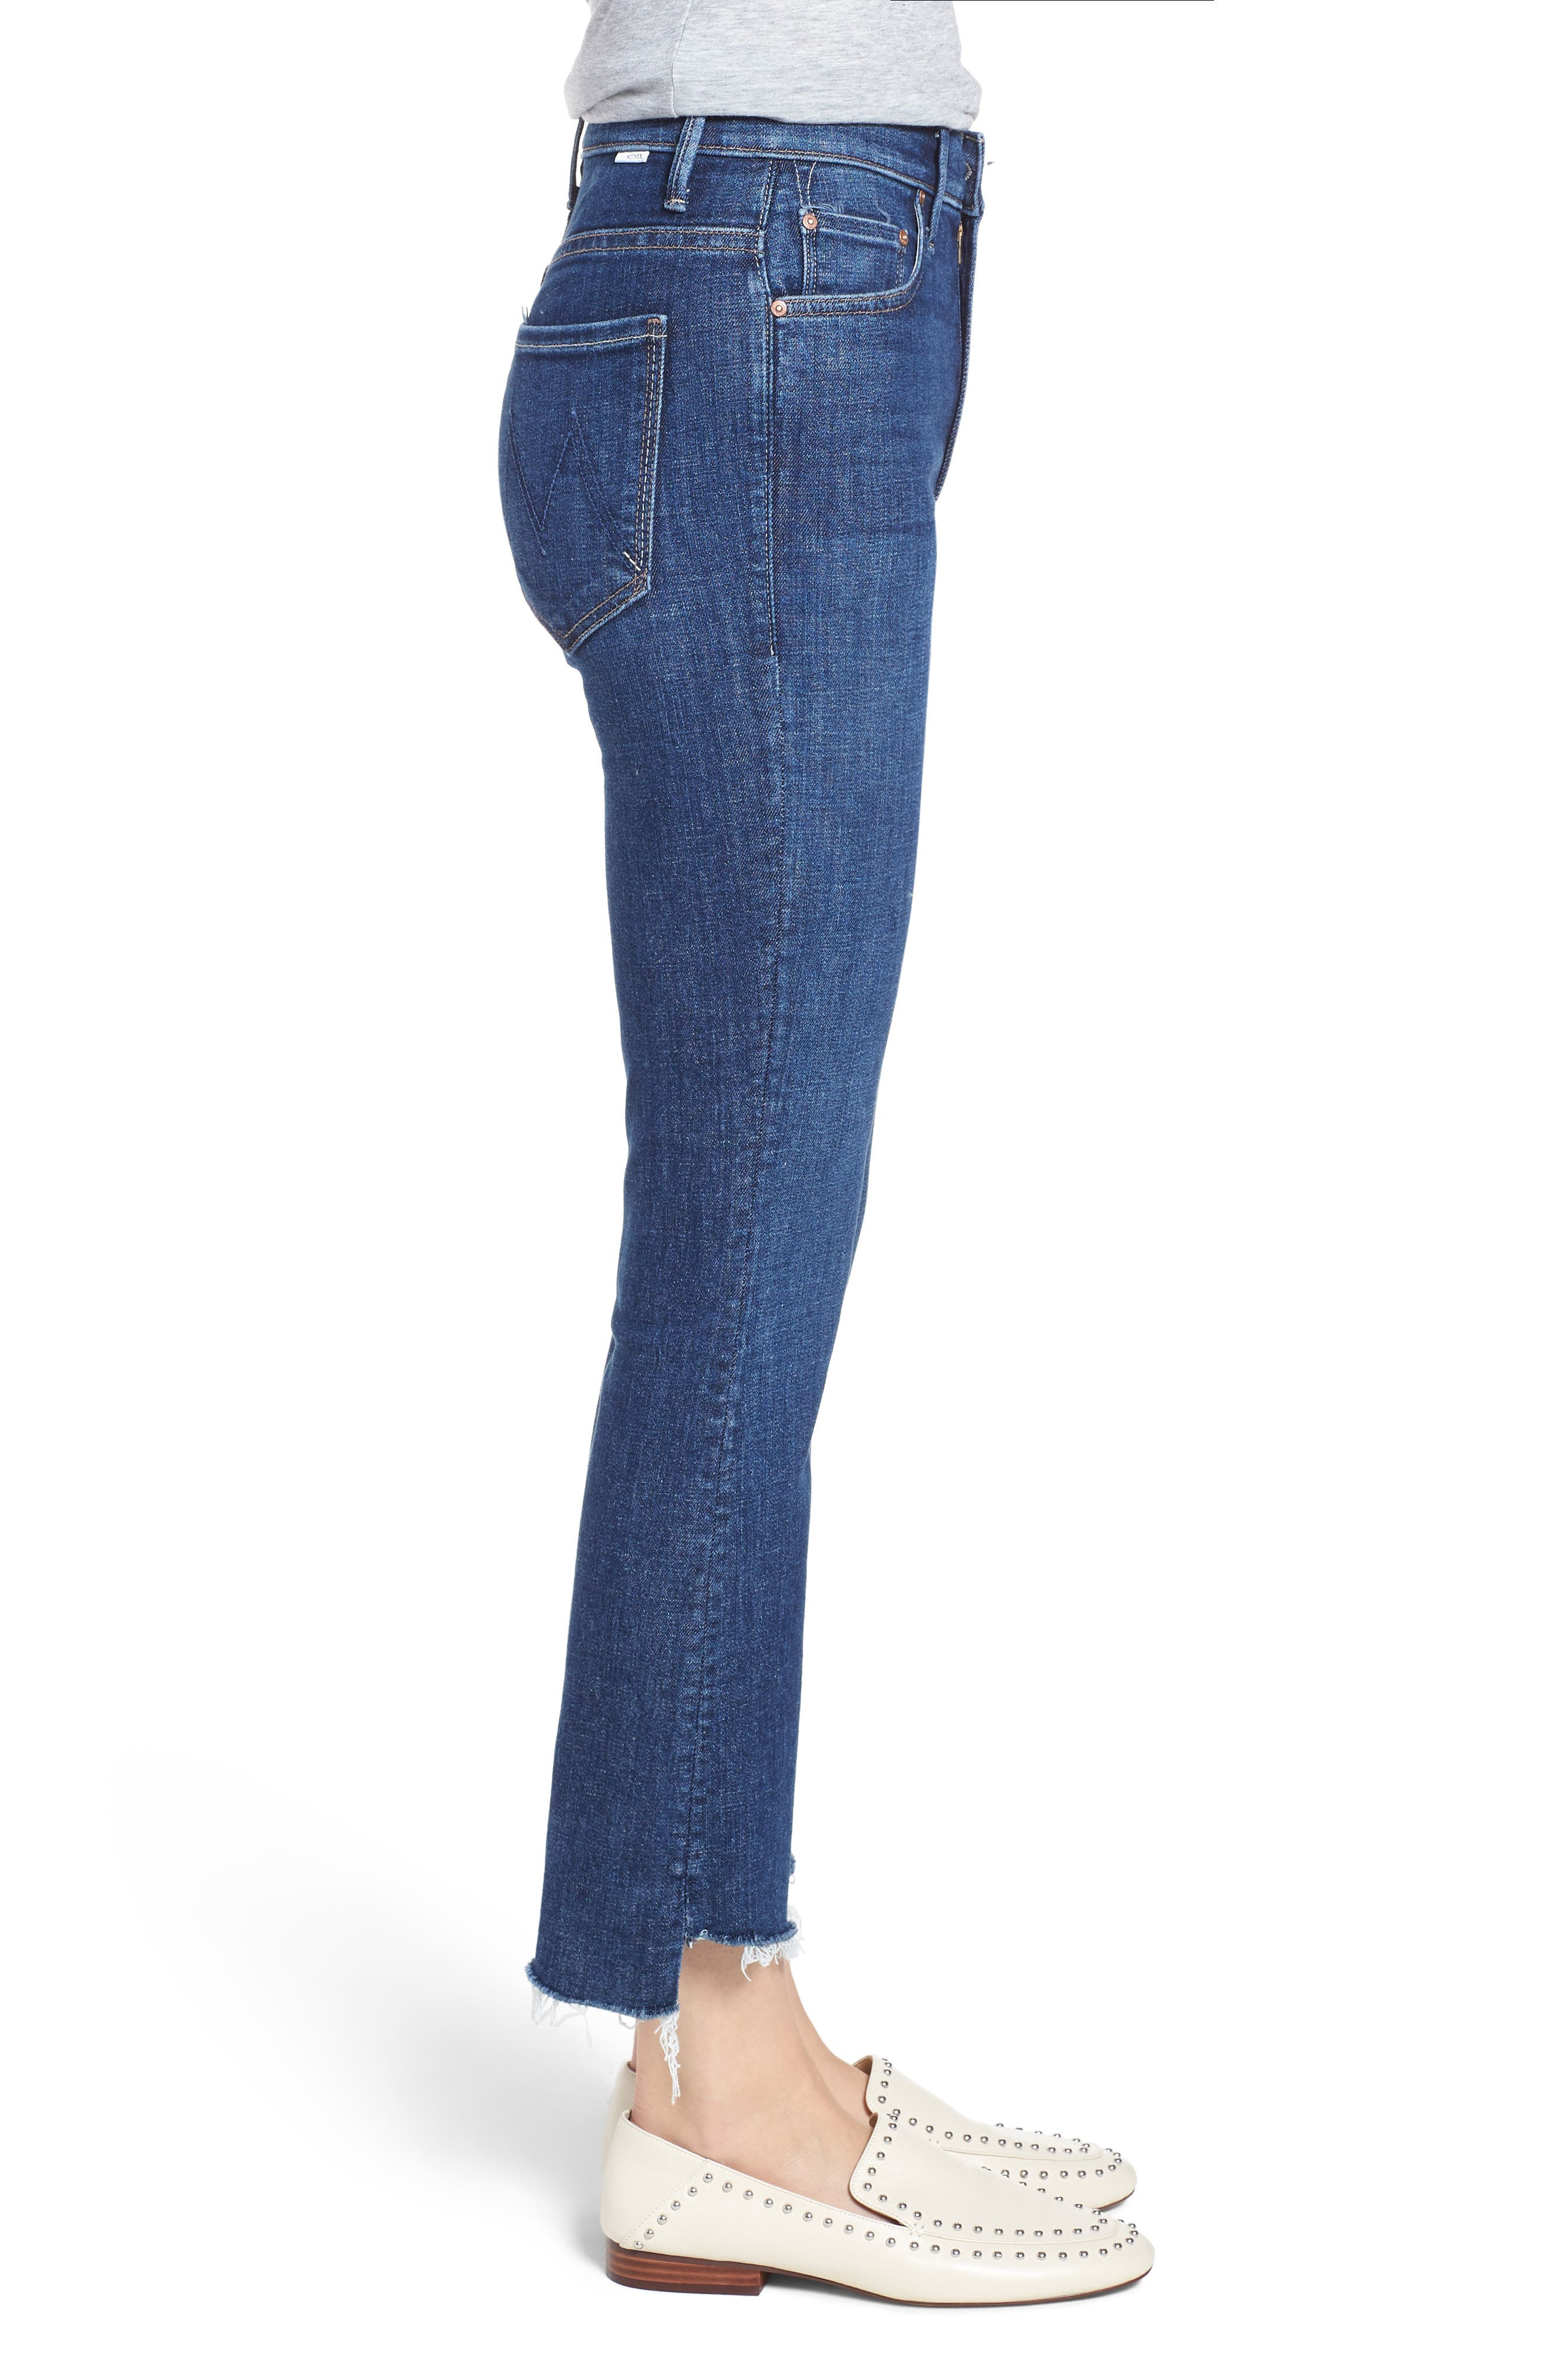 'The Insider' Crop Step Fray Jeans,                             Alternate thumbnail 3, color,                             Crushing It